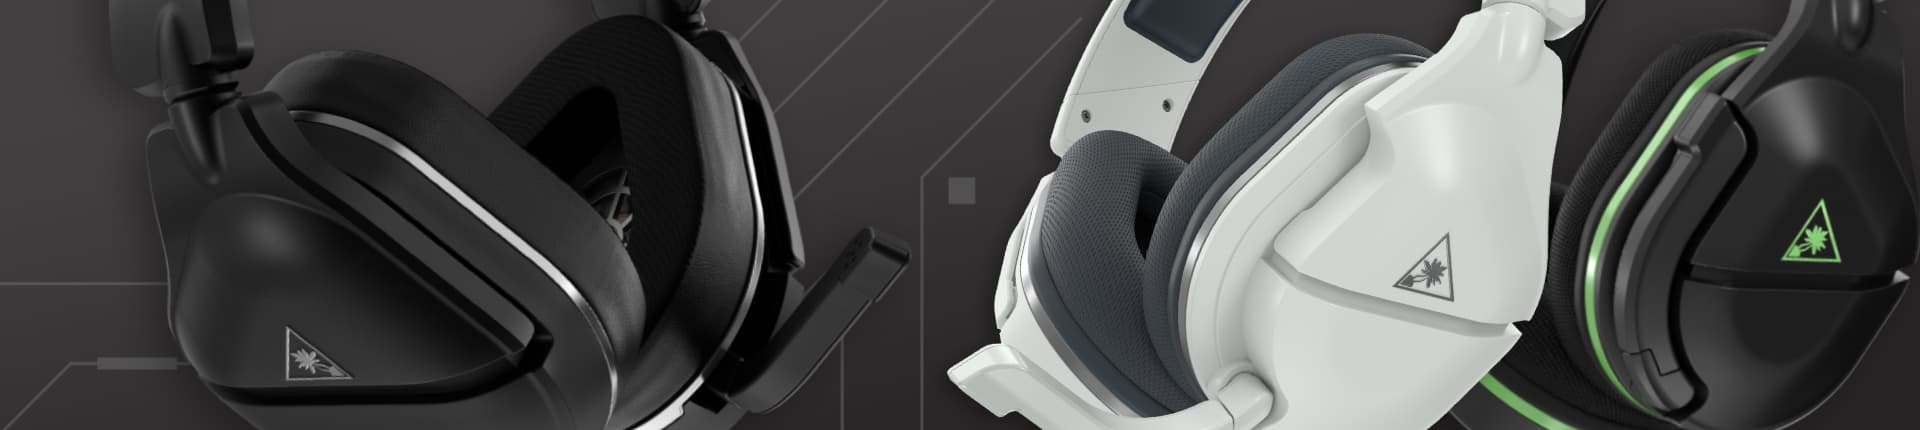 Stealth 600 und 700 Gen 2 Gaming-Headsets